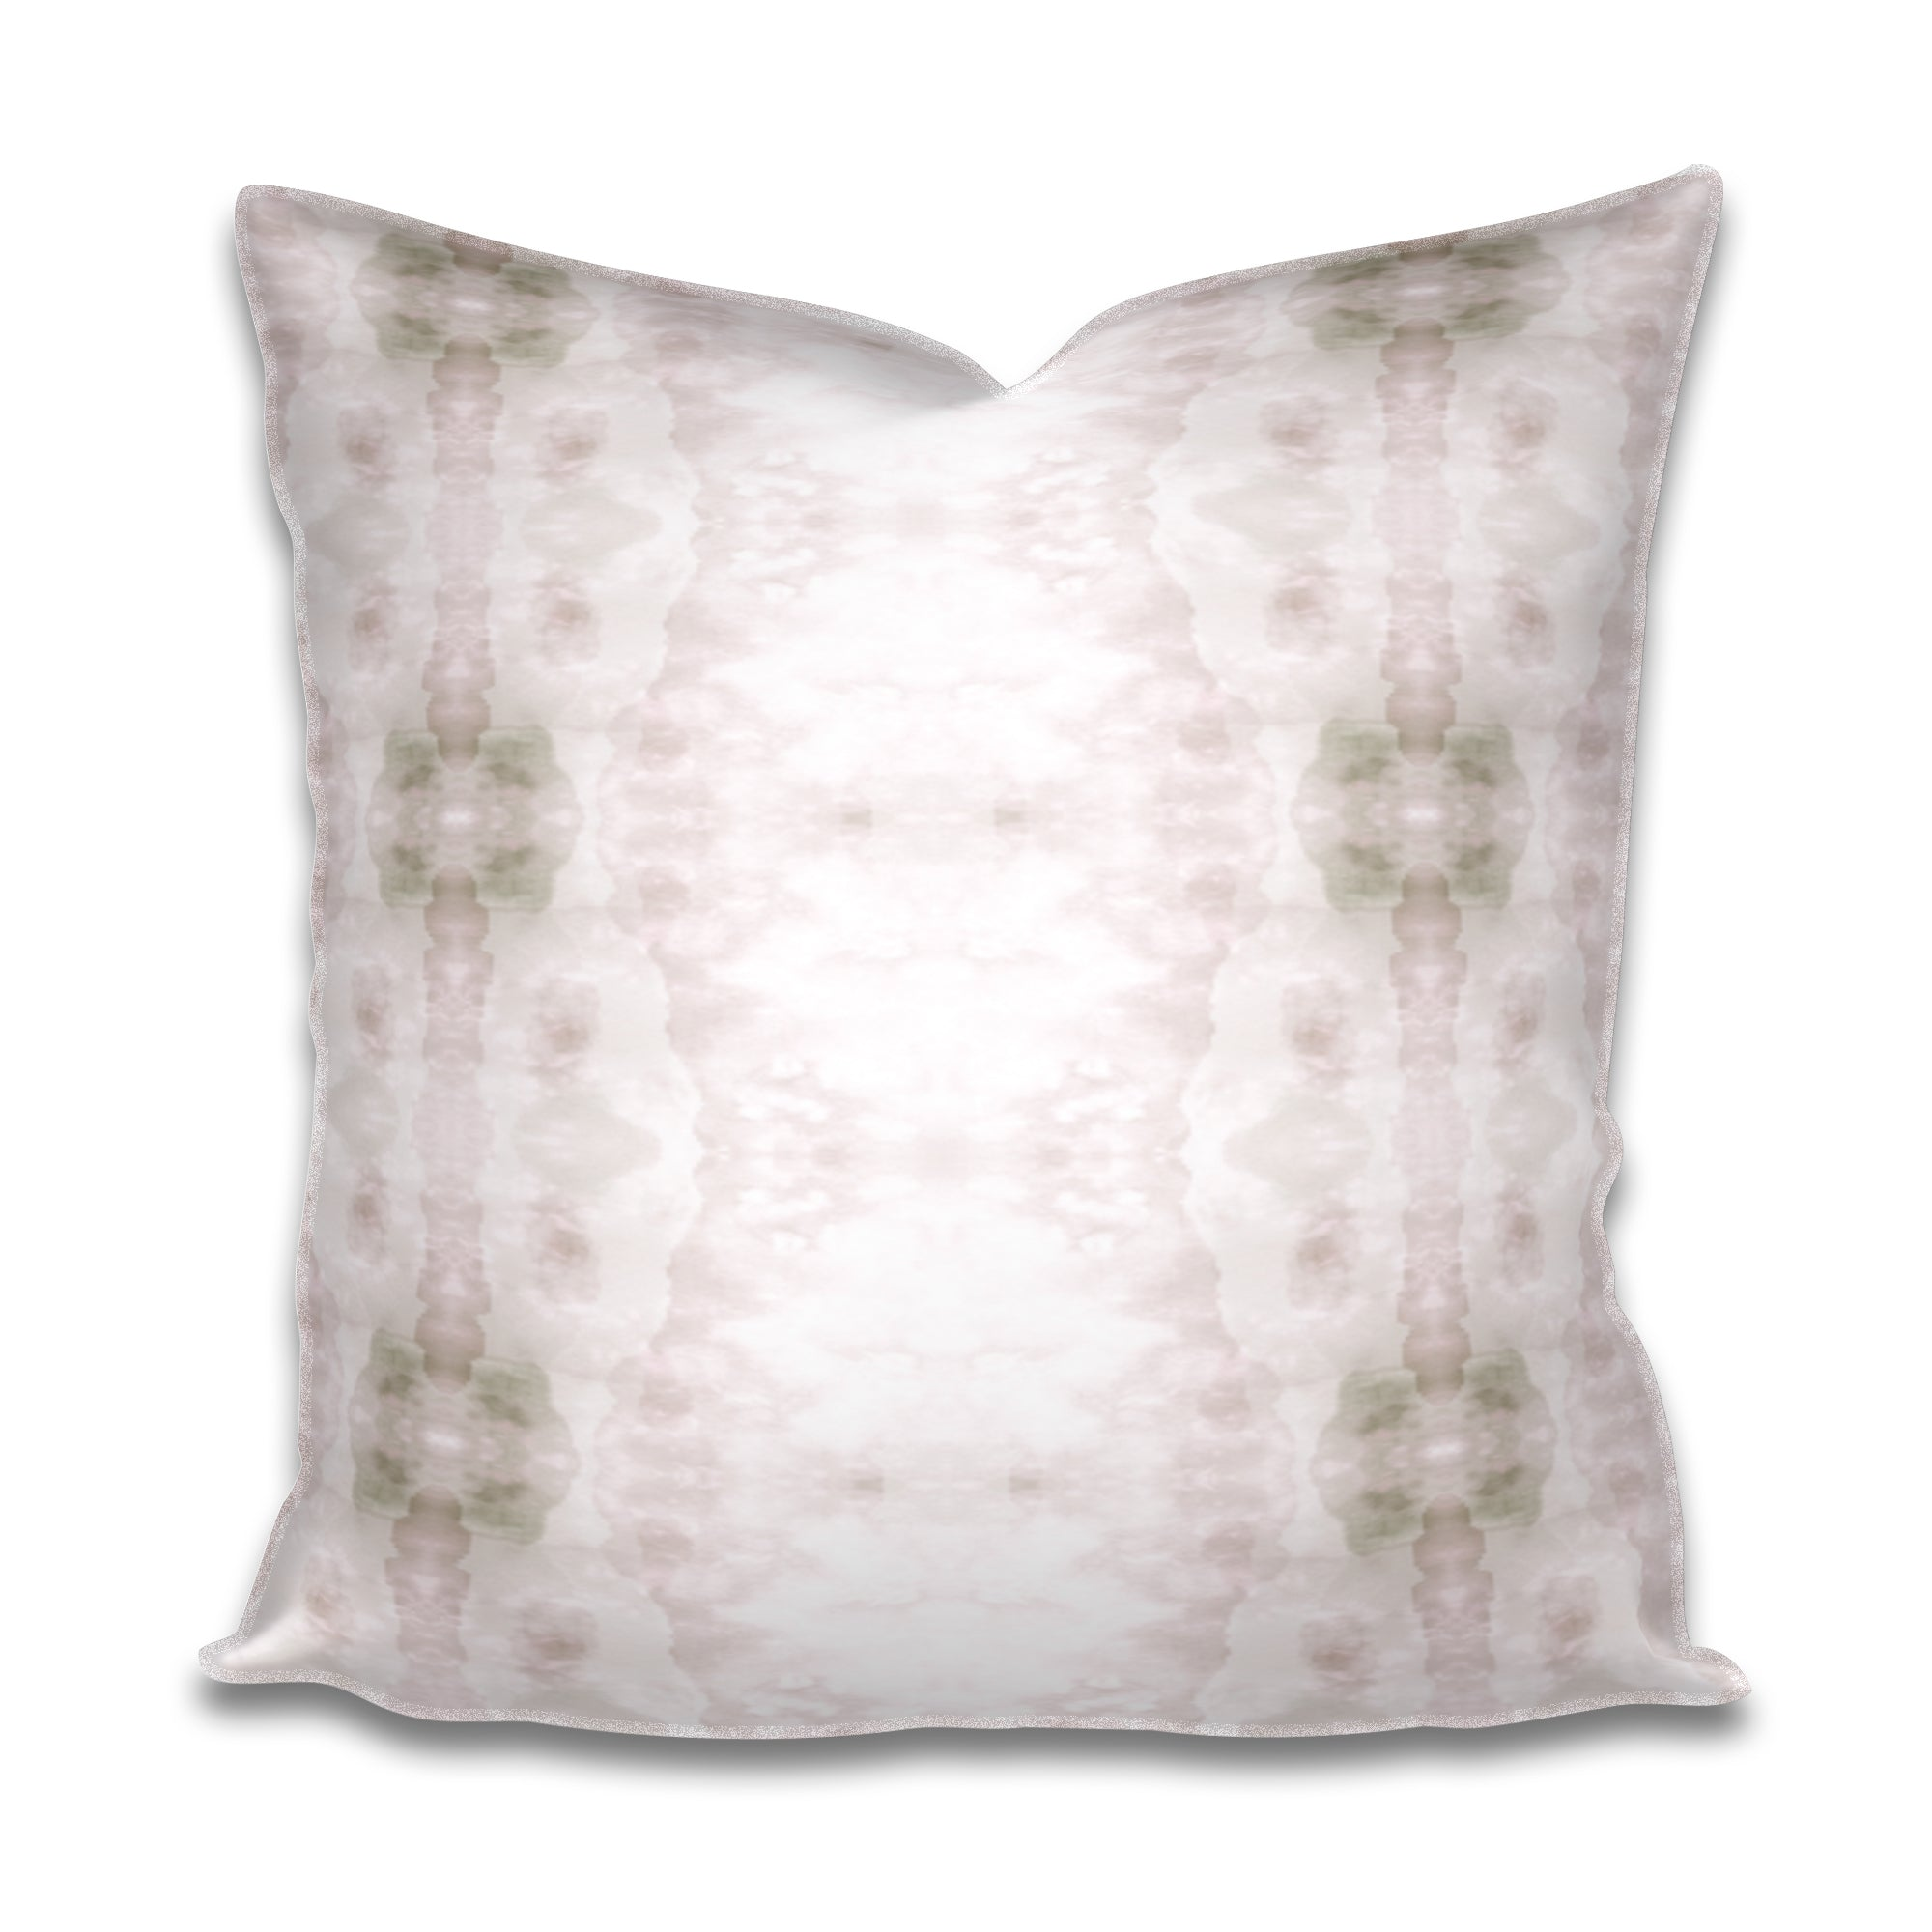 Sierra Blush Pillow